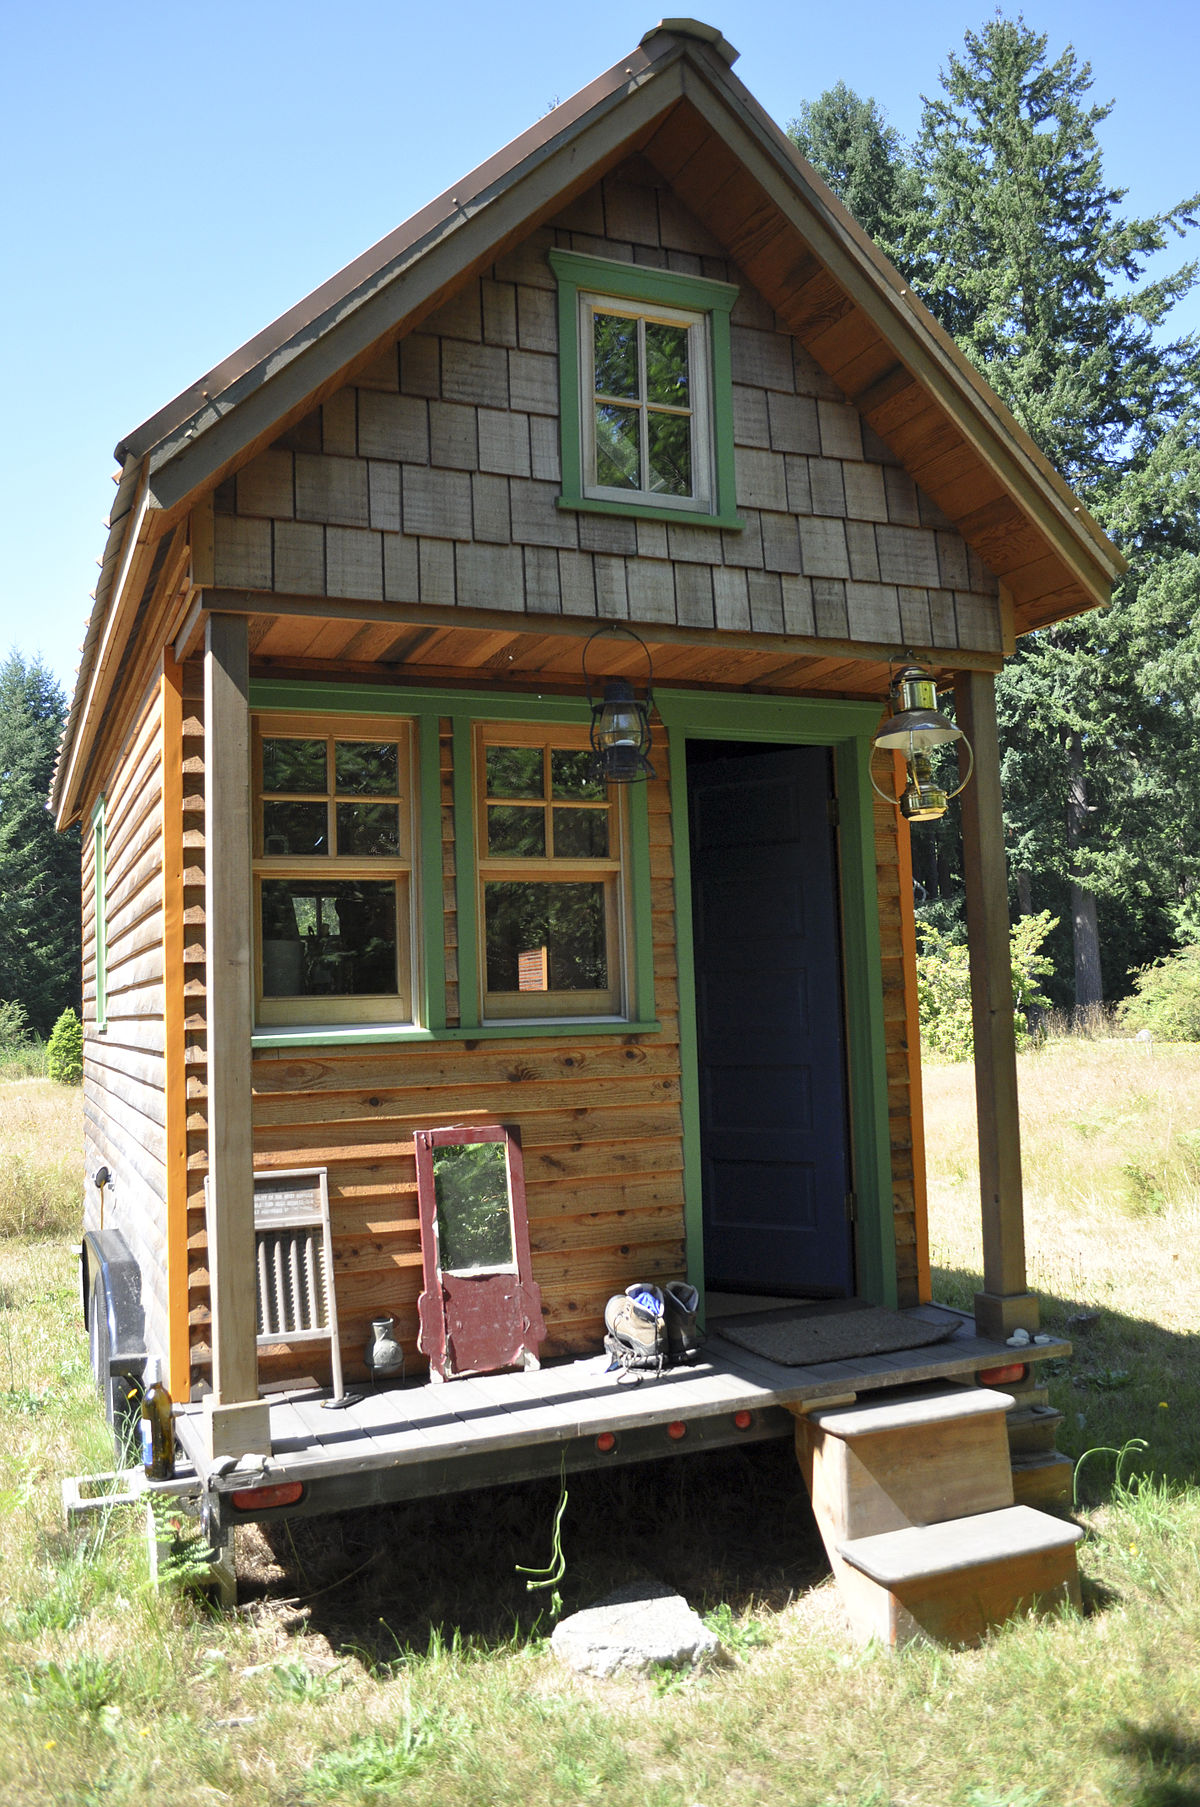 Tiny house movement wikipedia for Small home images